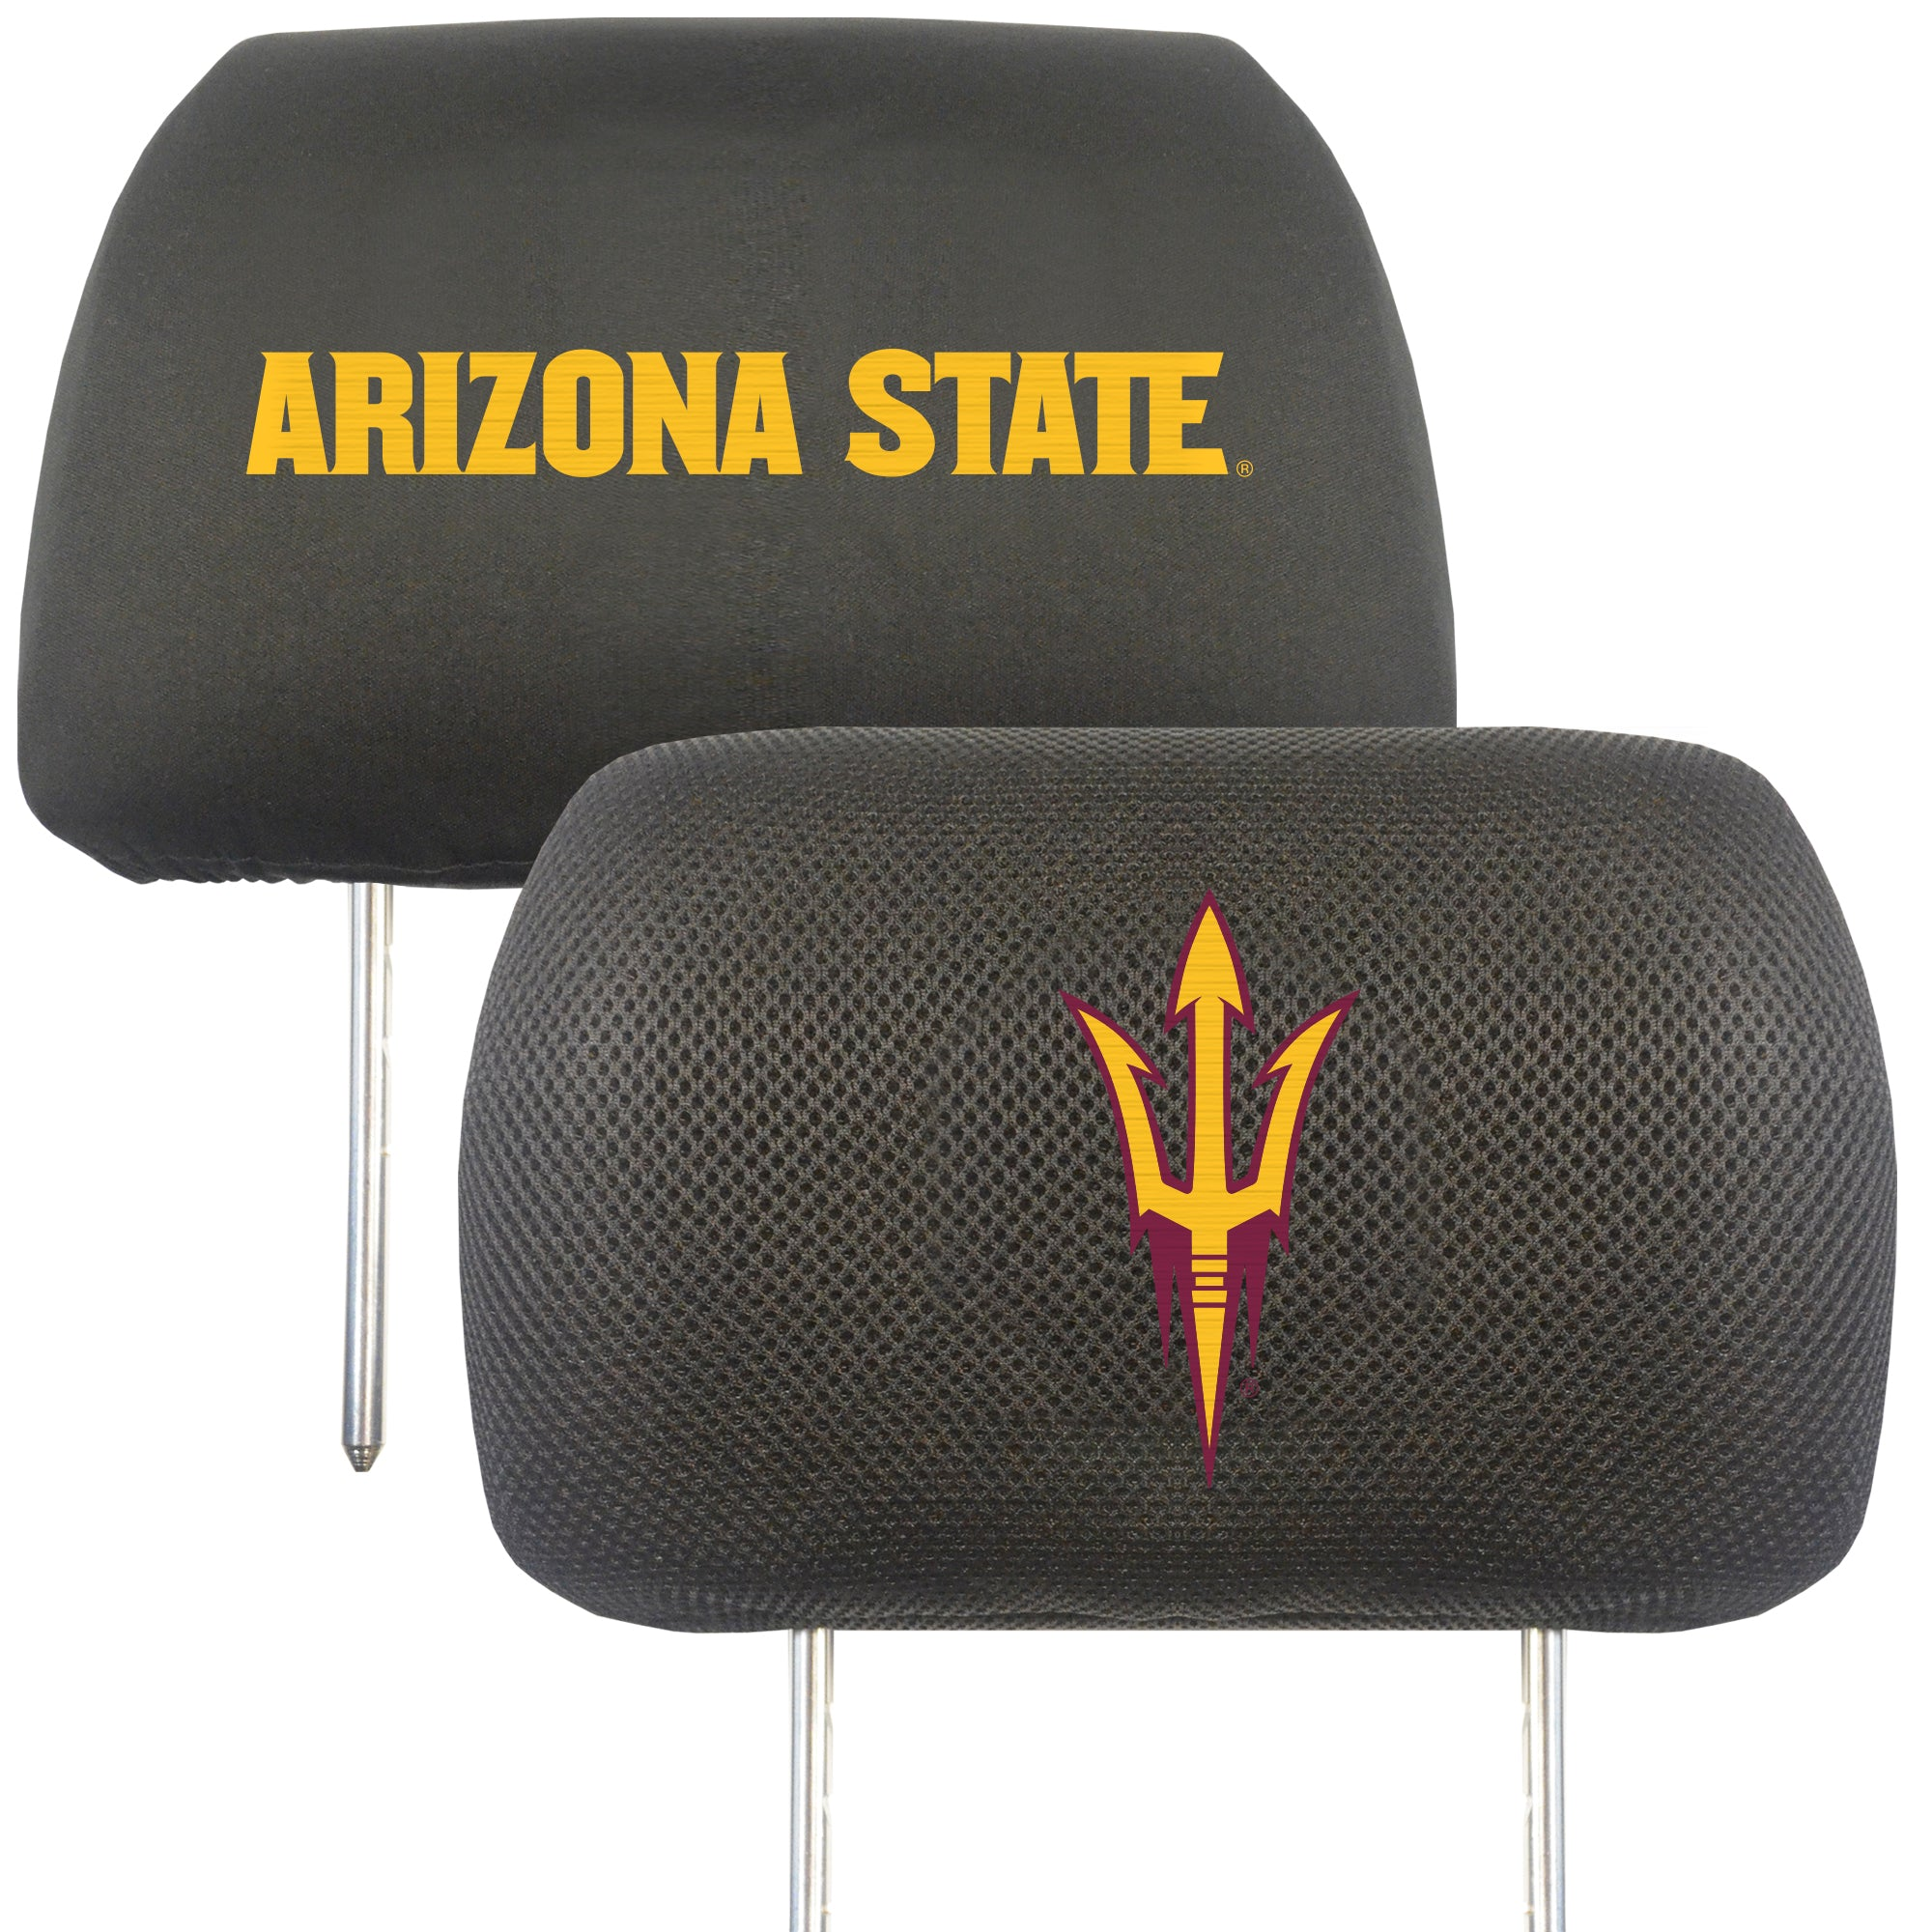 "Arizona State University Head Rest Cover 10""x13"""